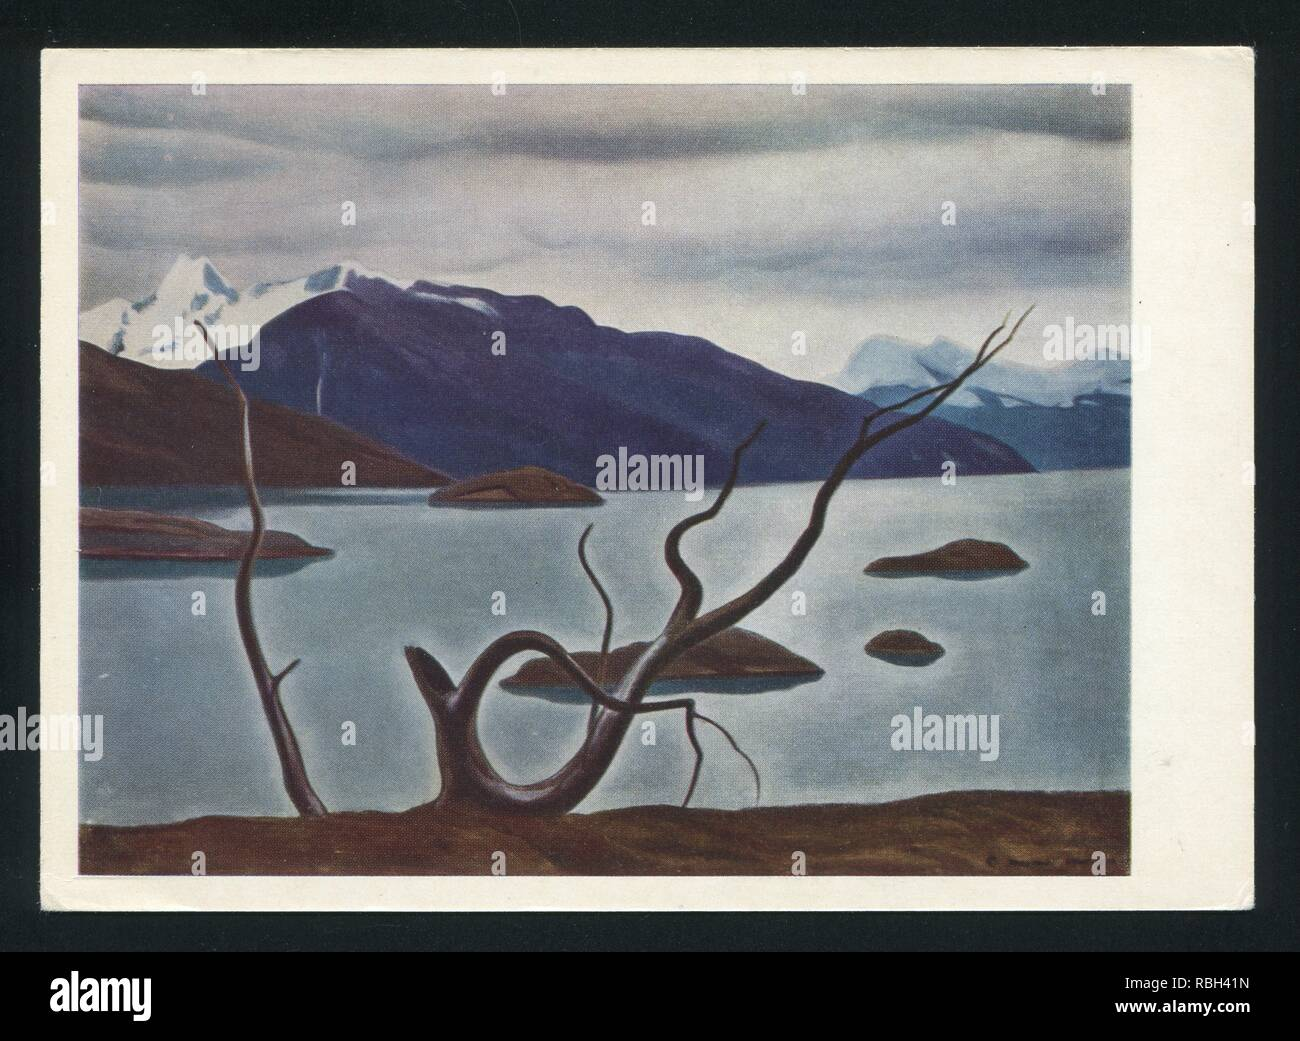 Rockwell Kent Stock Photos & Rockwell Kent Stock Images - Alamy